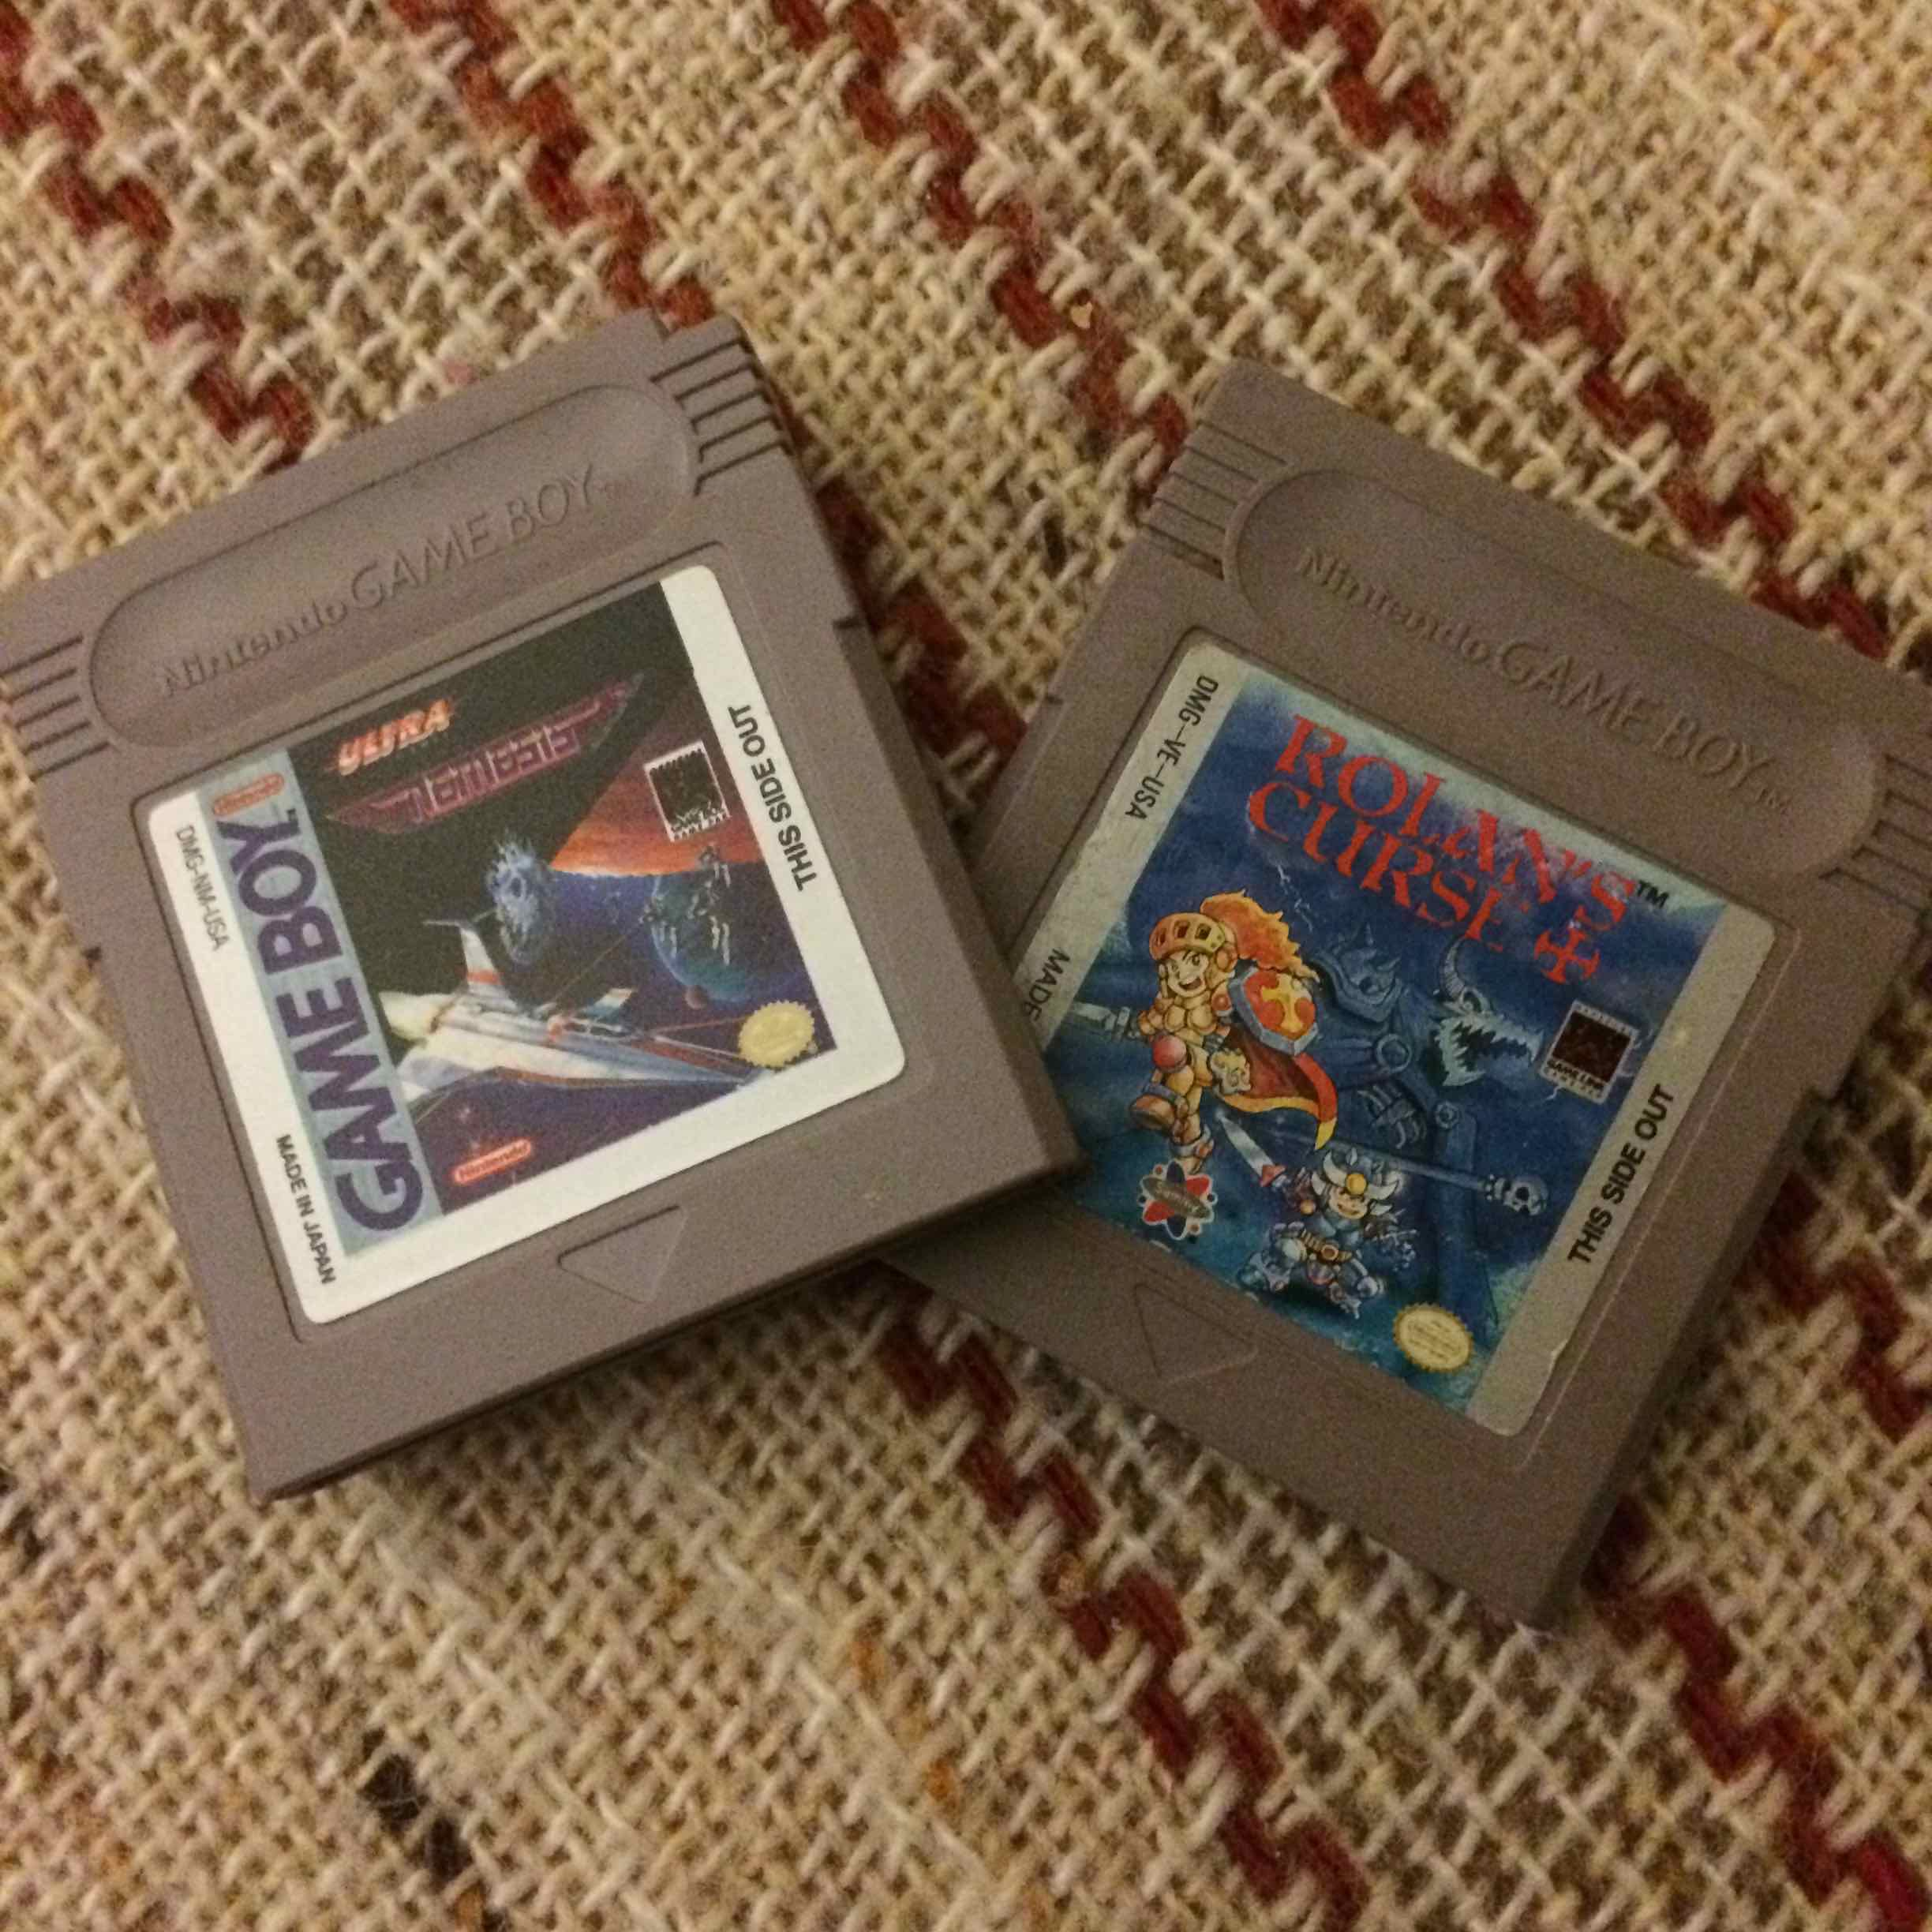 I collect Game Boy games for those crazy little details; they're neat.